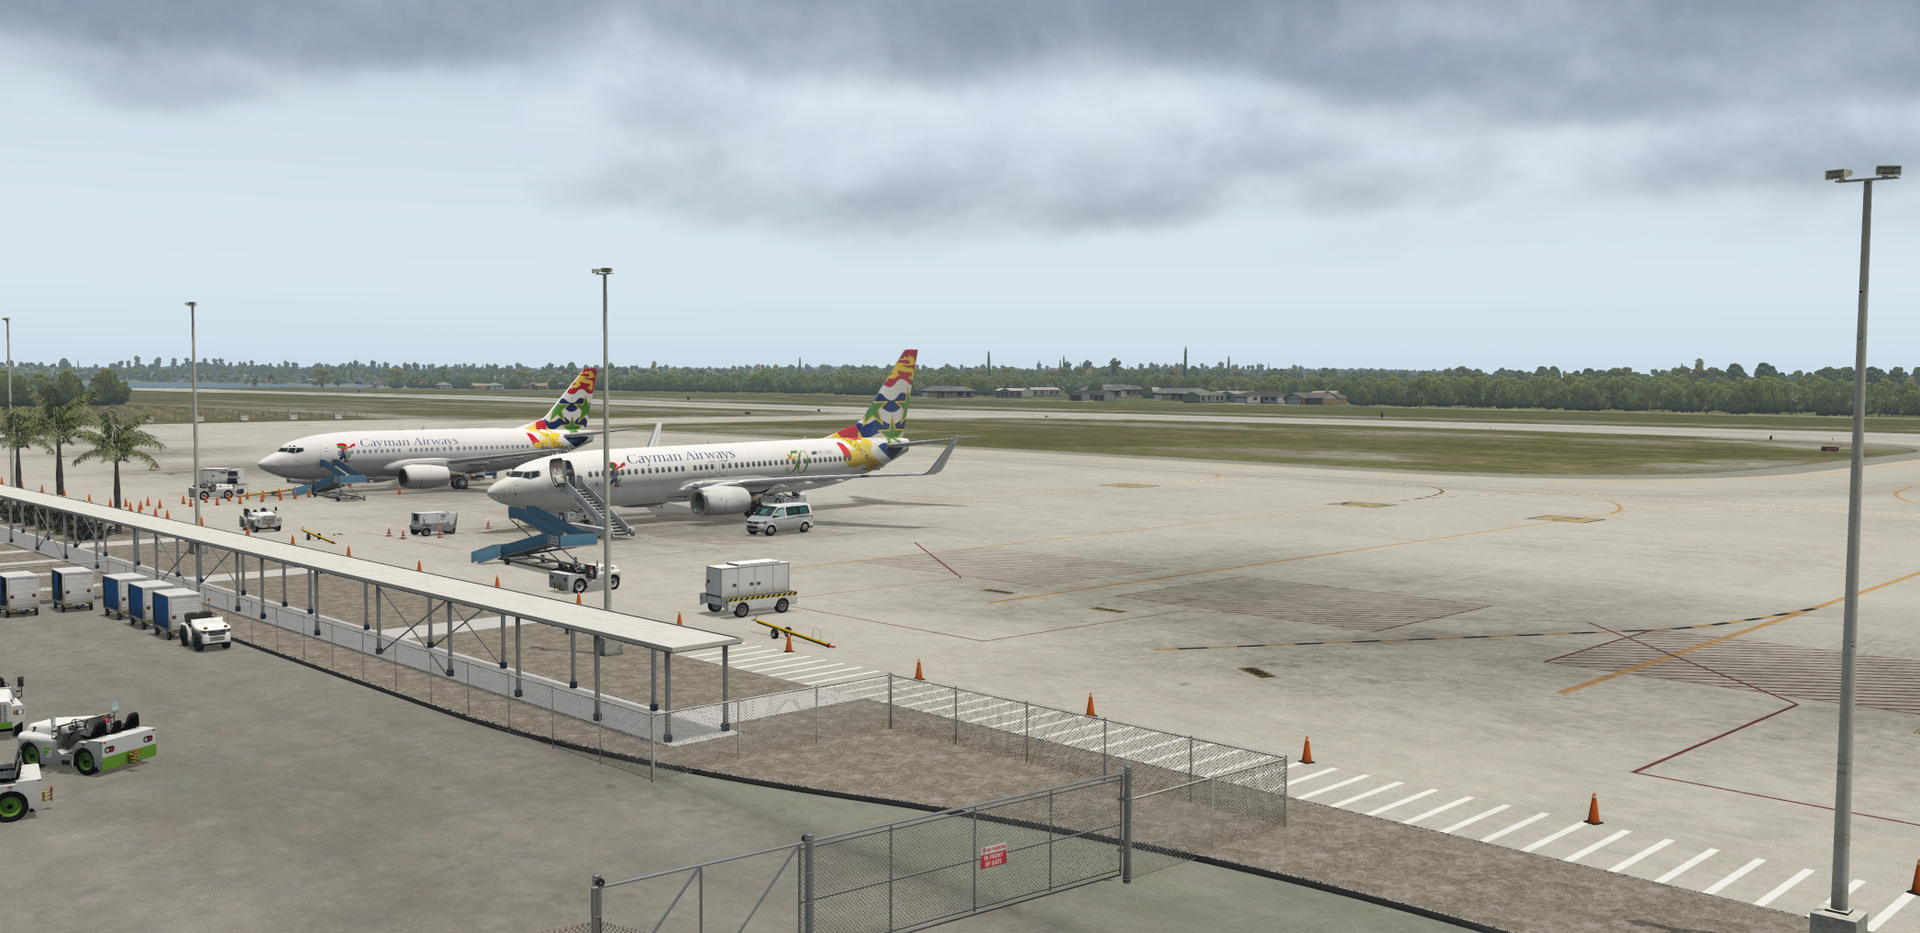 b738_57.png